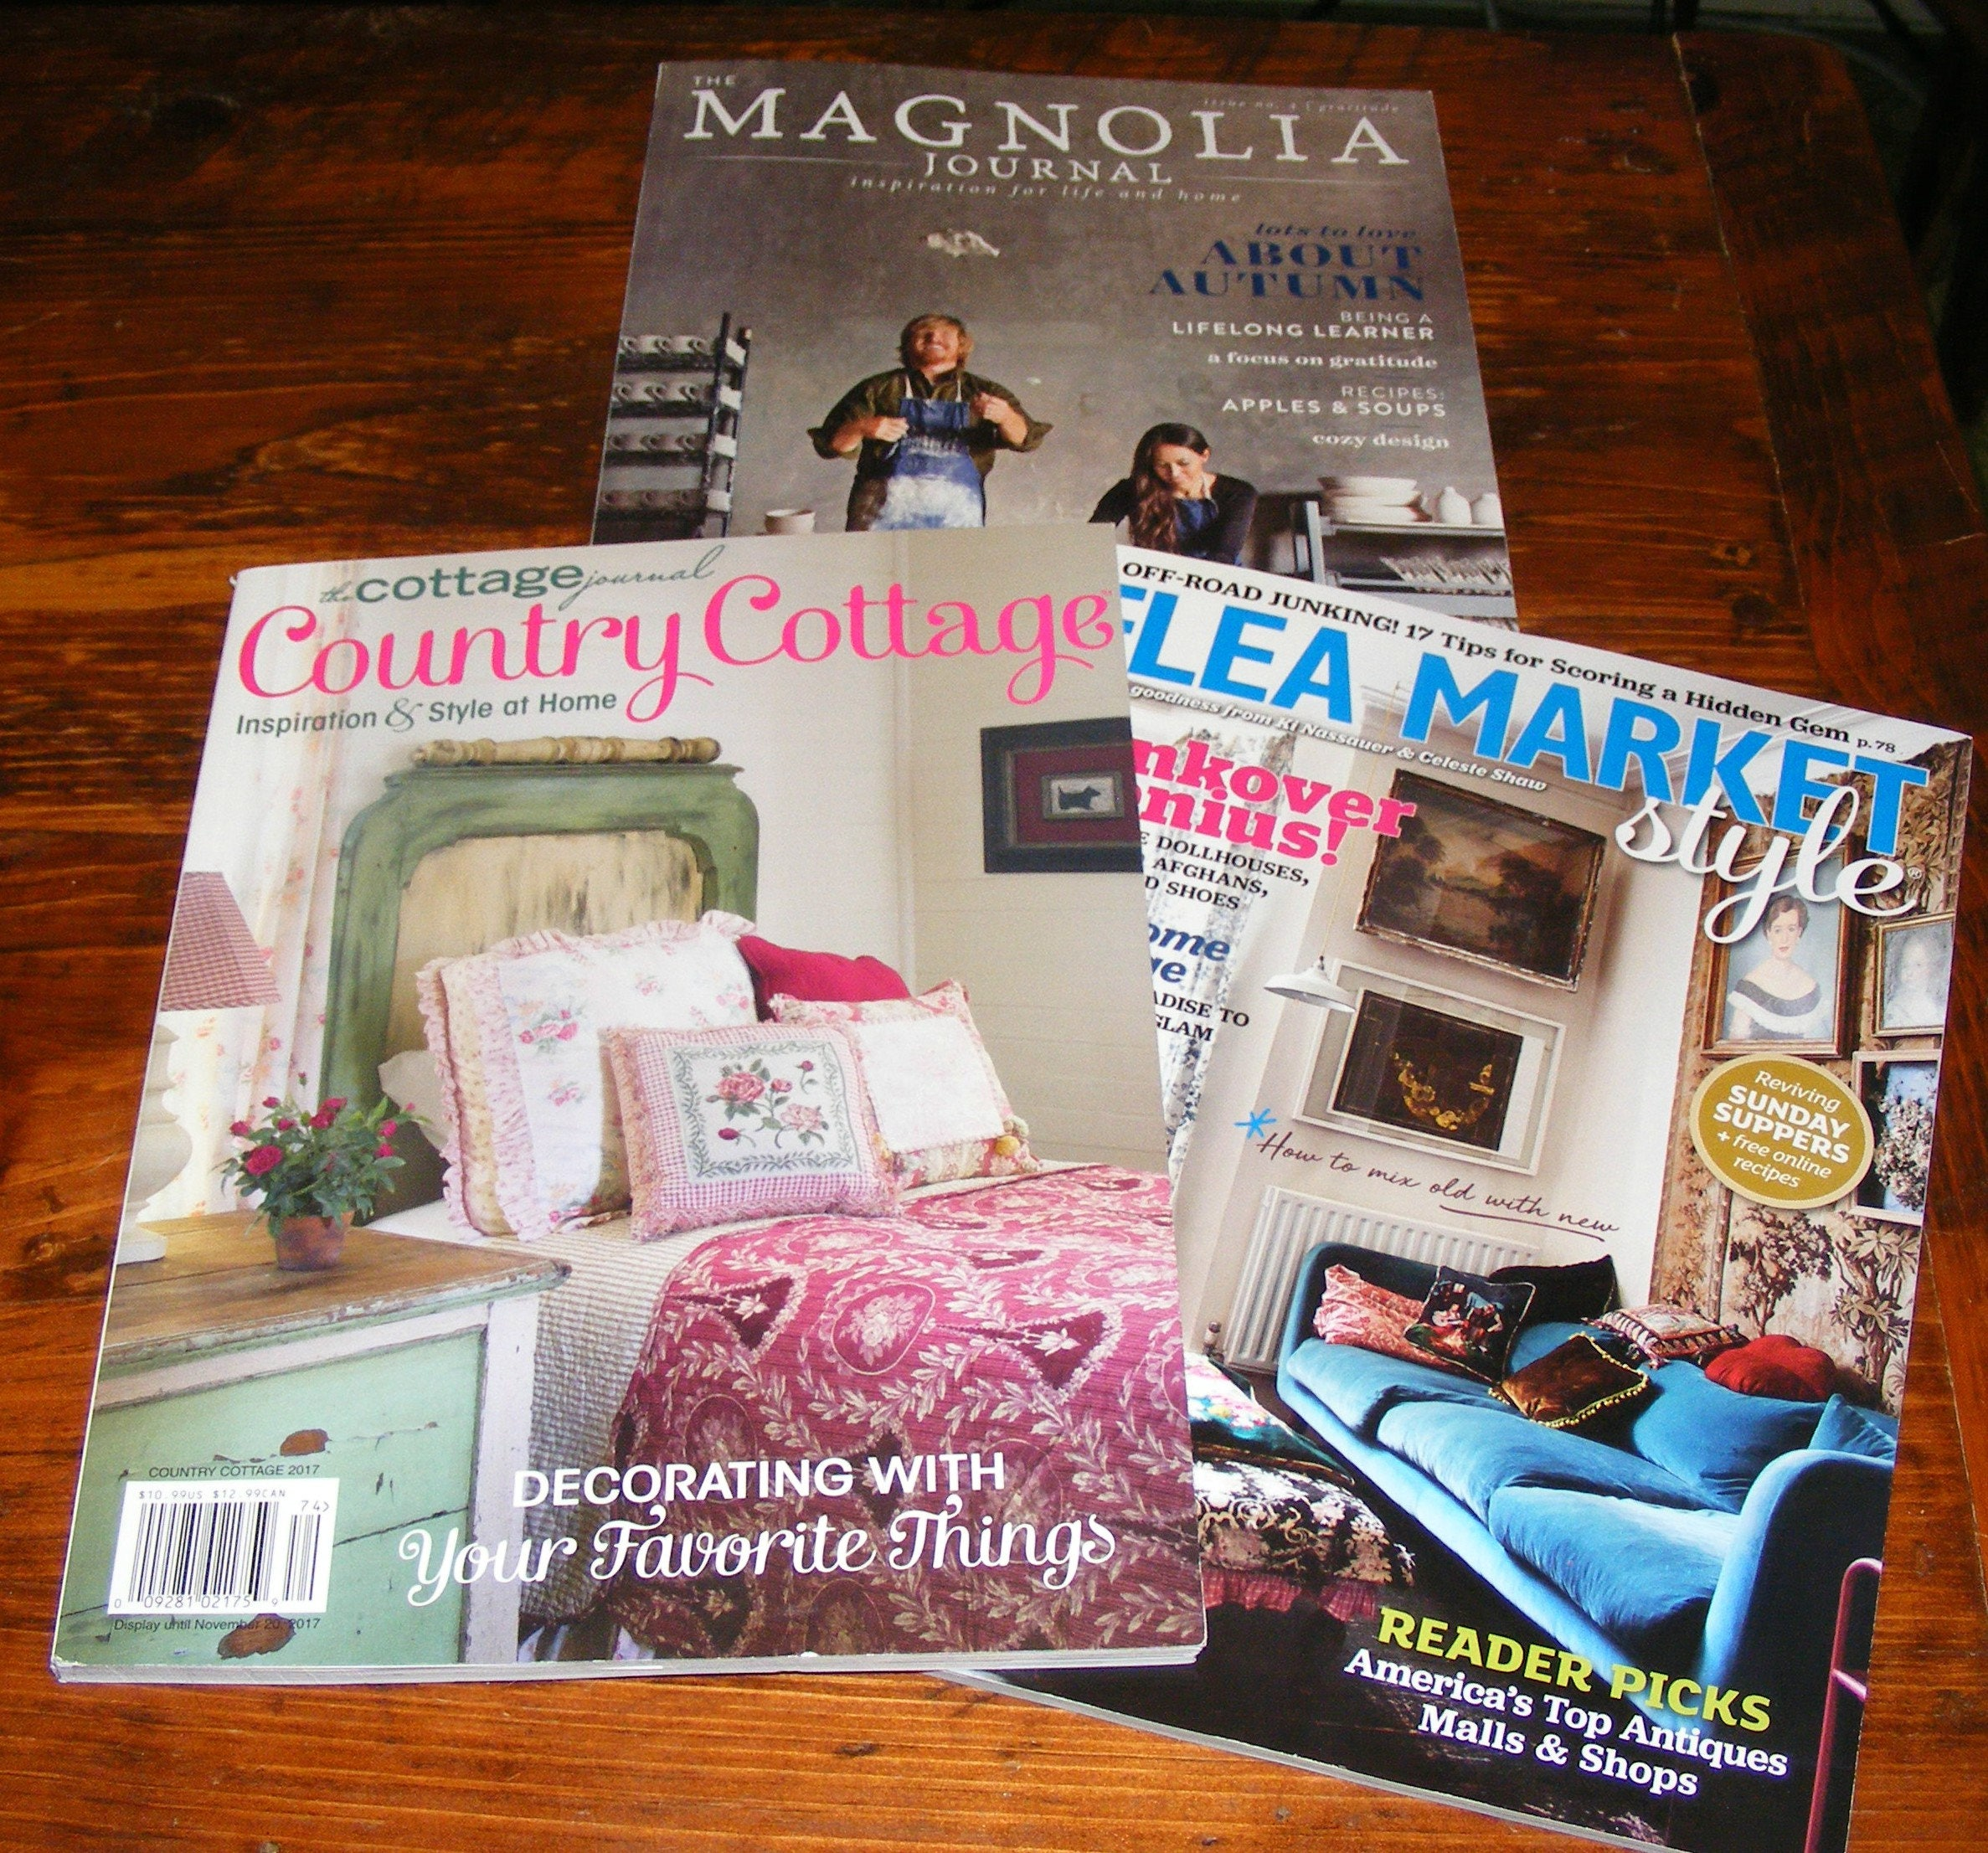 The cottage journal country cottage 2017 magnolia journal fall for Country cottage magazine